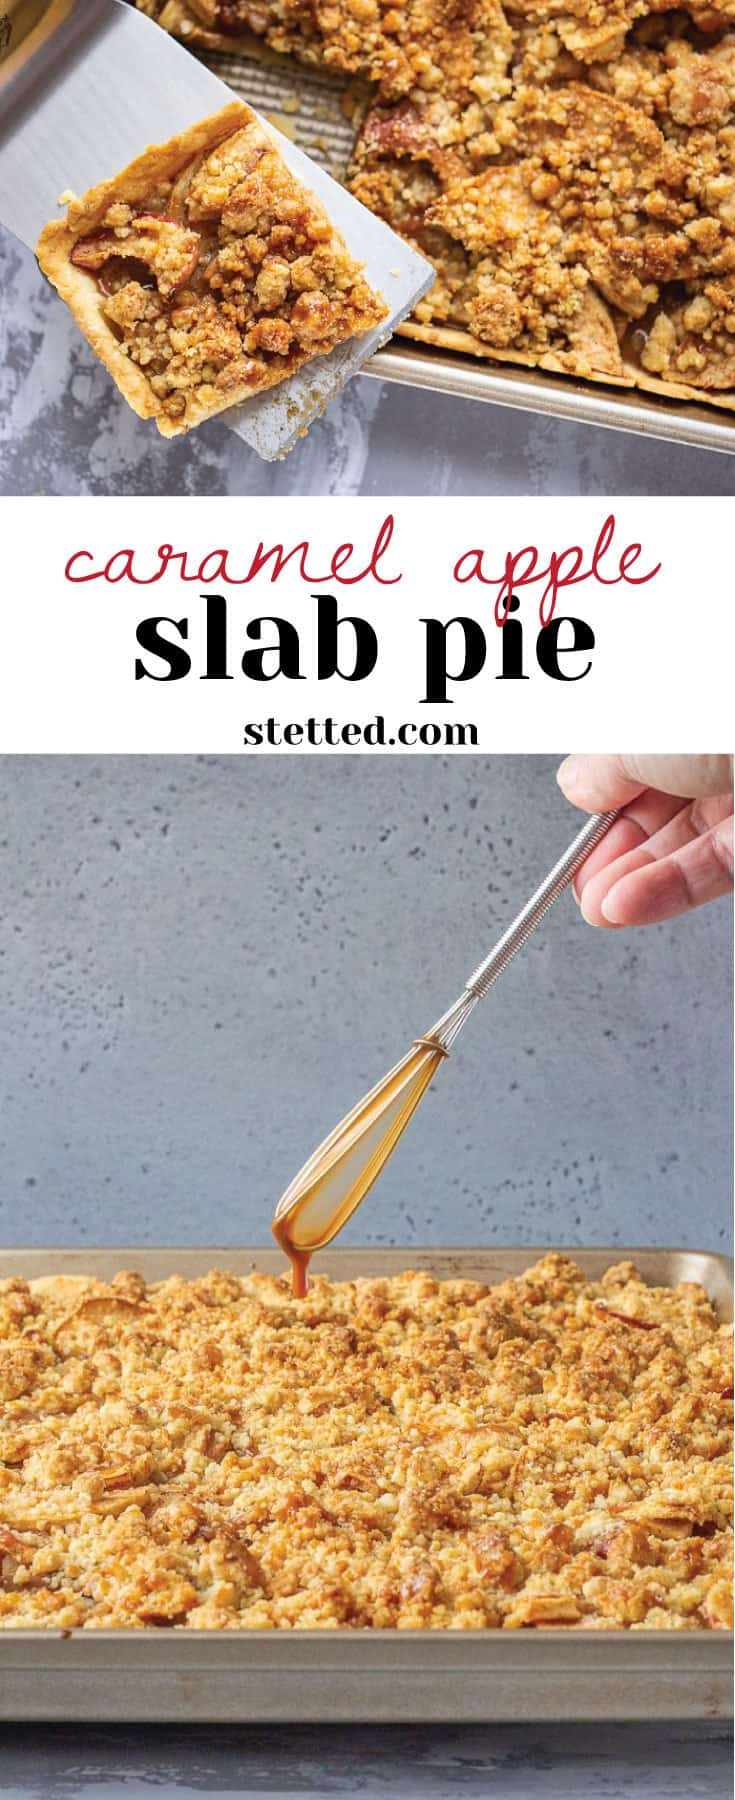 Caramel apple slab pie is a sweet welcome to fall that feeds a crowd. Make it for potlucks, tailgating, or whenever you need to use up some apples.